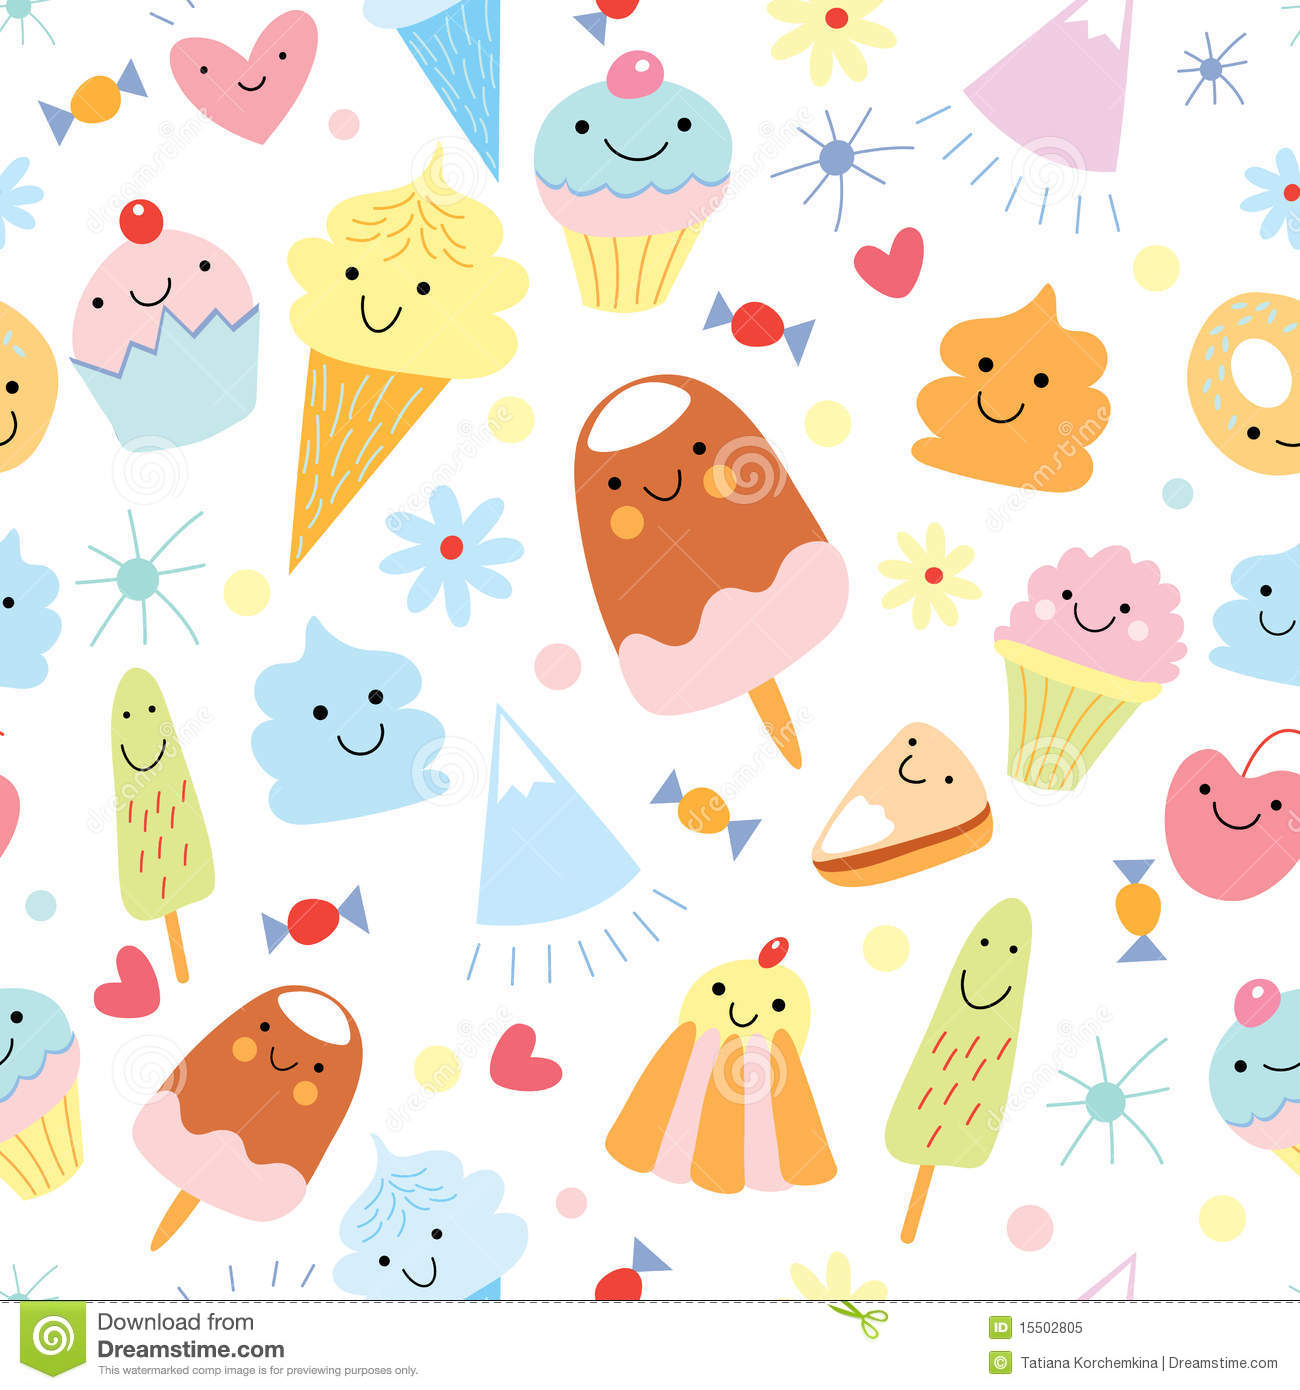 Seamless Ice Cream Wallpaper Royalty Free Stock Images: Texture Of Fun Ice Cream And Cake Stock Vector